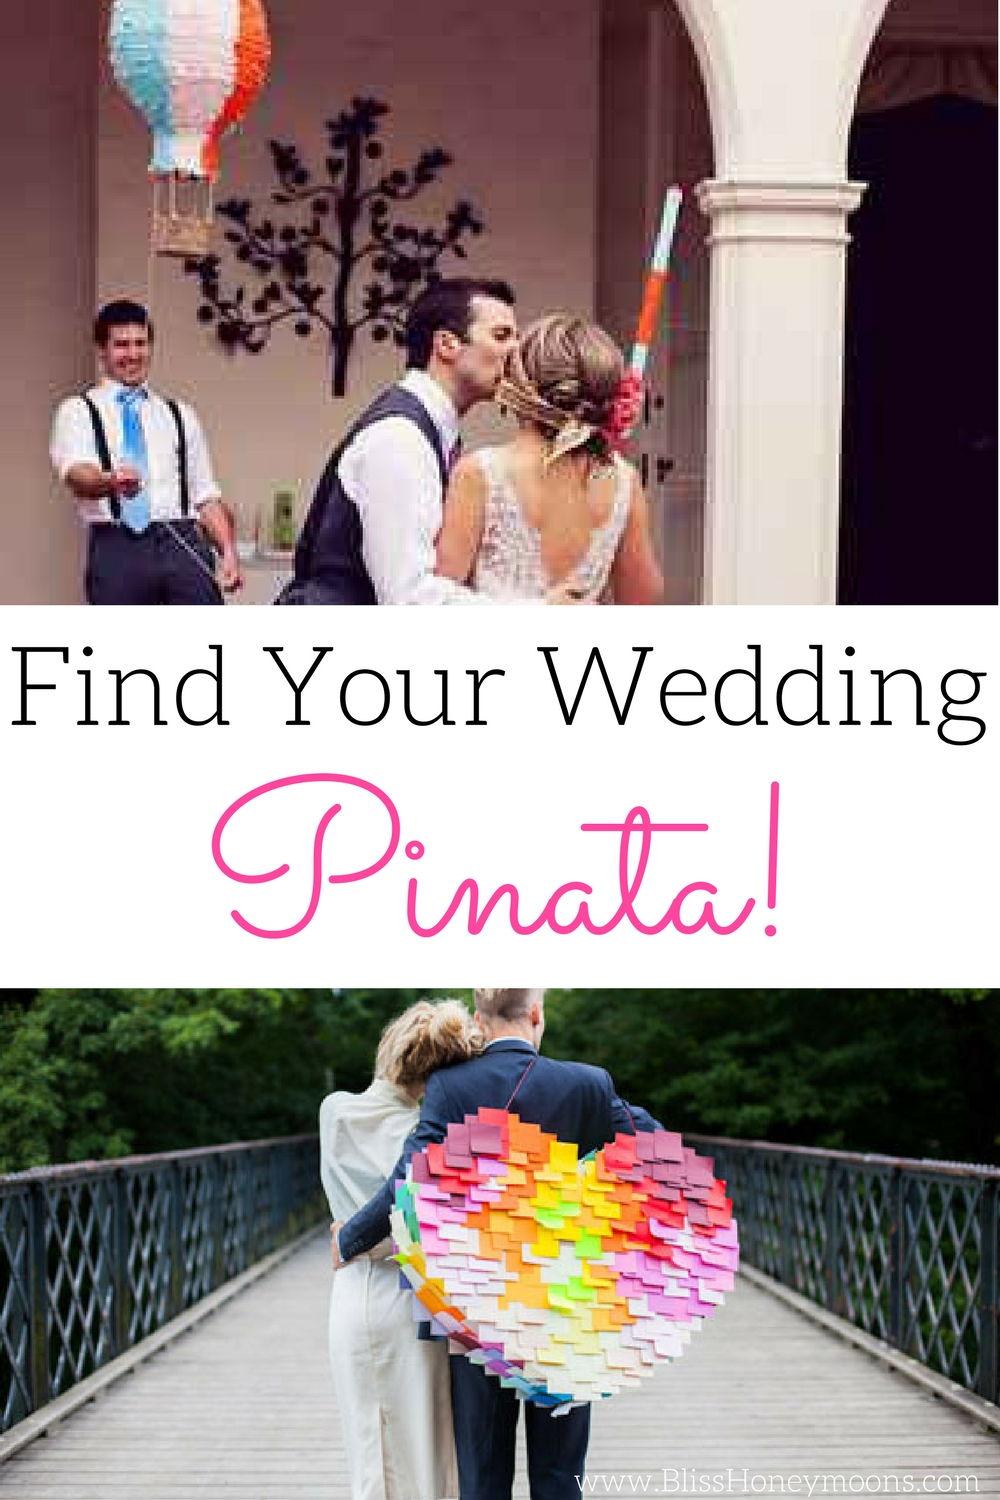 Best wedding piñata, destination wedding piñatas, fun destination wedding ideas, Best destination wedding travel agent, best destination honeymoon travel agent, perfect wedding piñata, fun wedding games, wedding entertainment